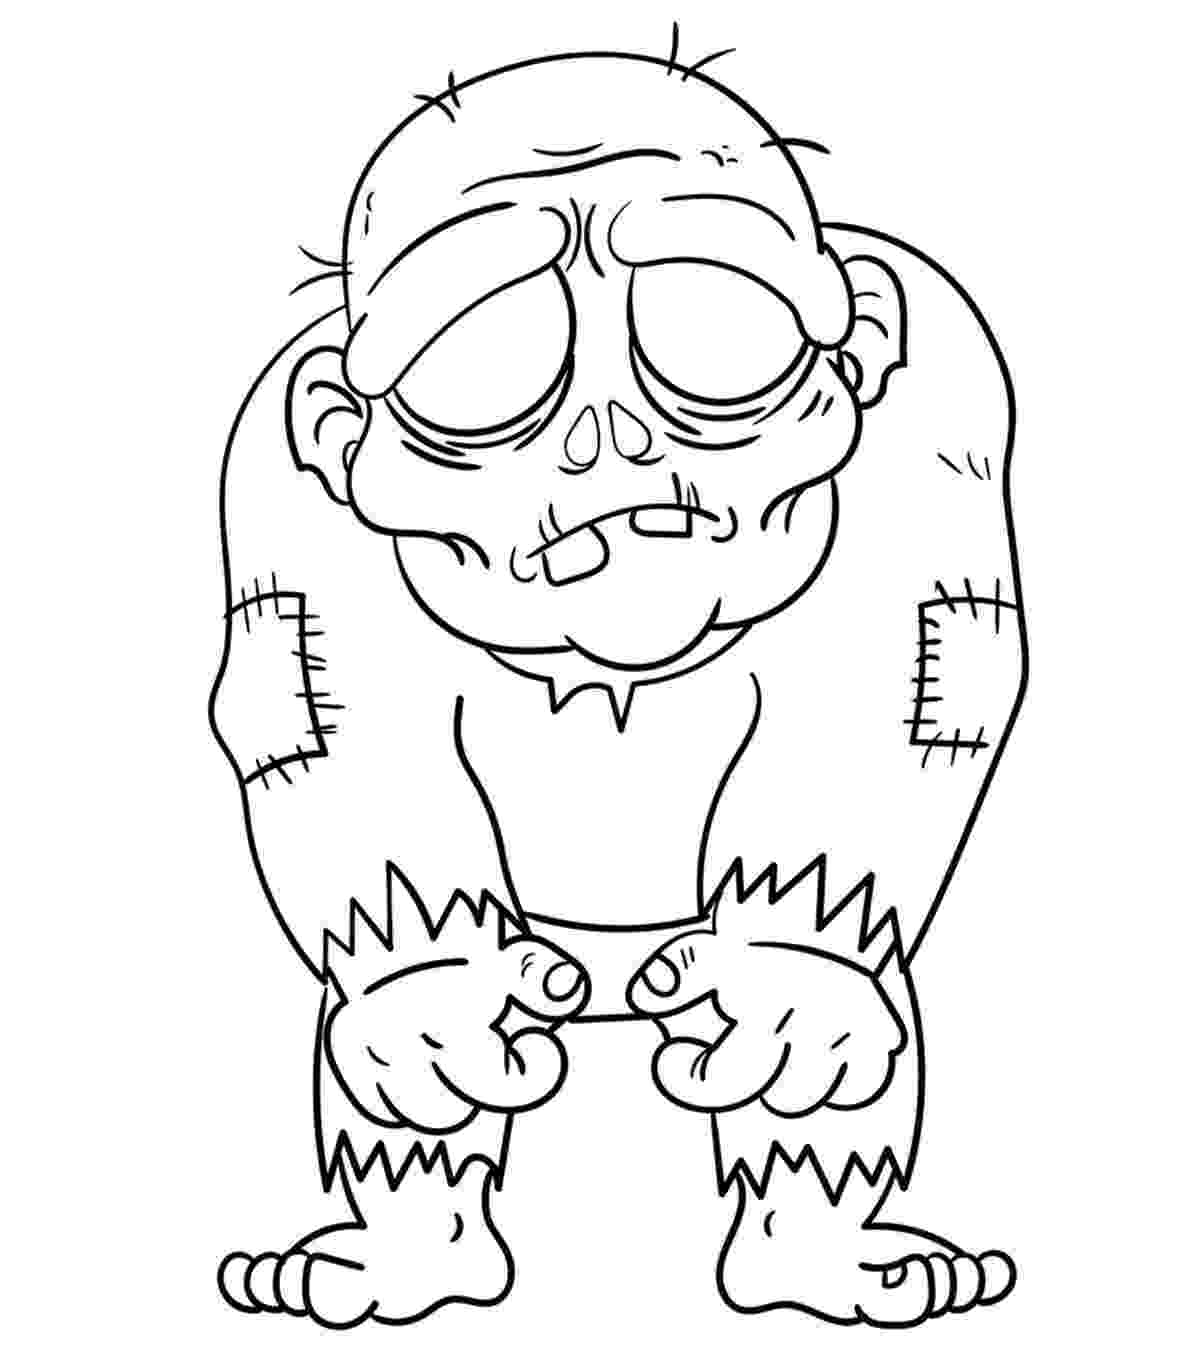 zombie coloring sheets printable free printable zombie coloring pages for kids cool2bkids printable coloring sheets zombie